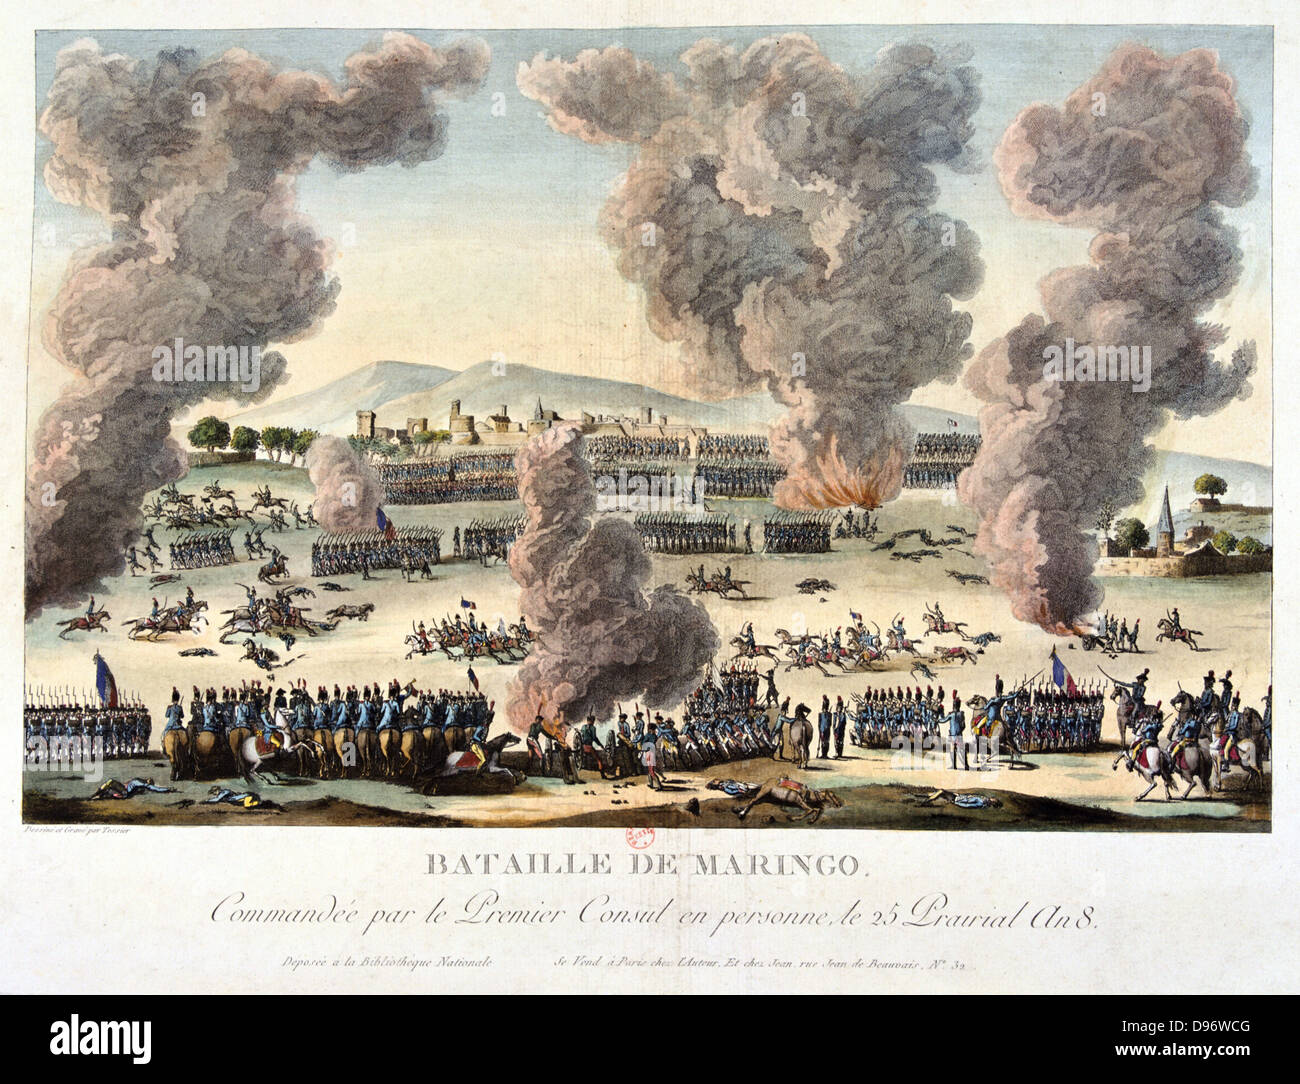 The Battle of Marengo, 14 June 1800. French forces under Napoleon defeated Austrians. Coloured lithograph. - Stock Image